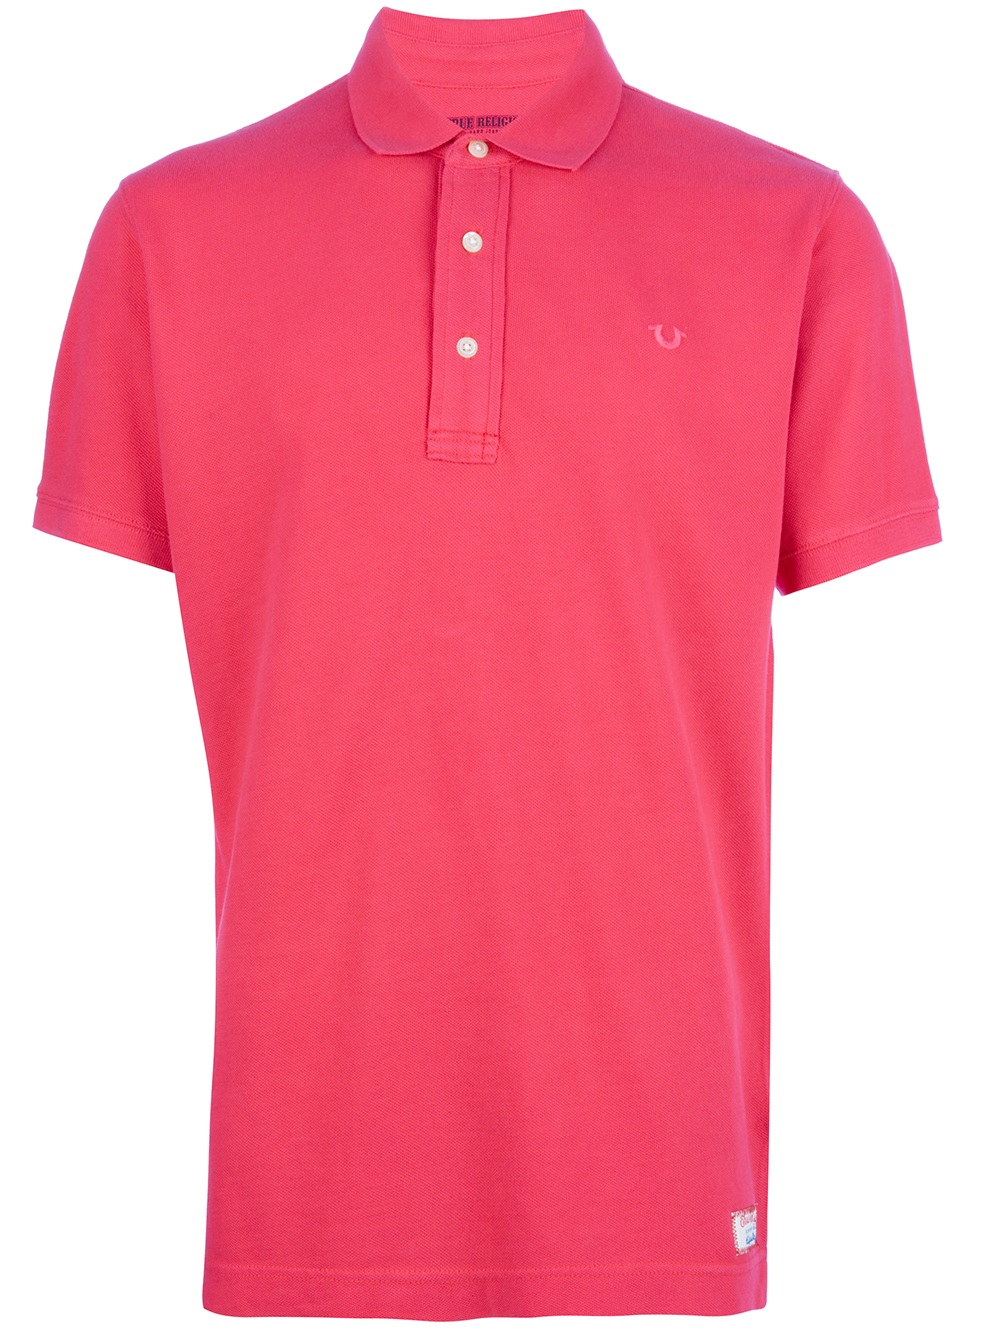 true religion classic polo shirt in red for men lyst